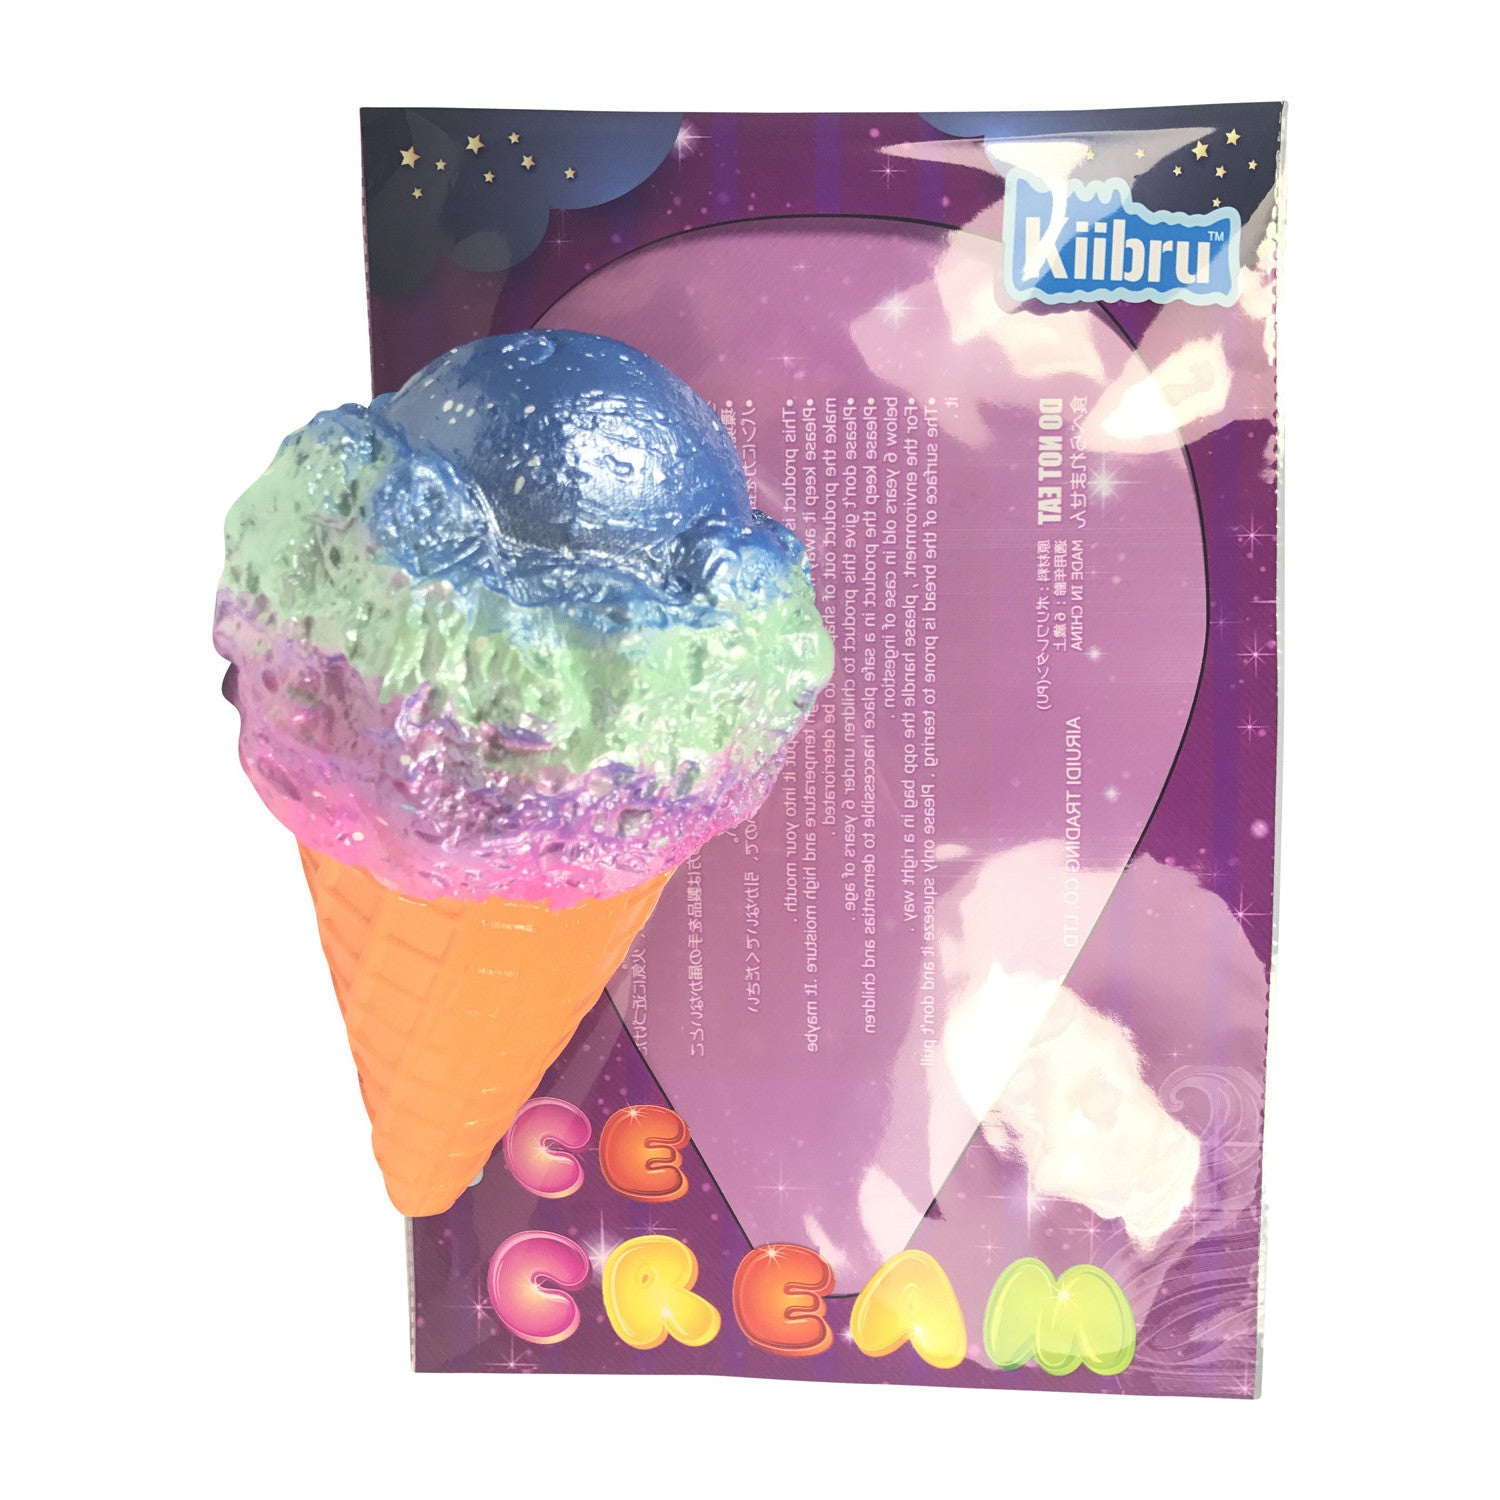 SUPER Slow Rise Colossal Kiibru SCENTED Ice Cream Cone!